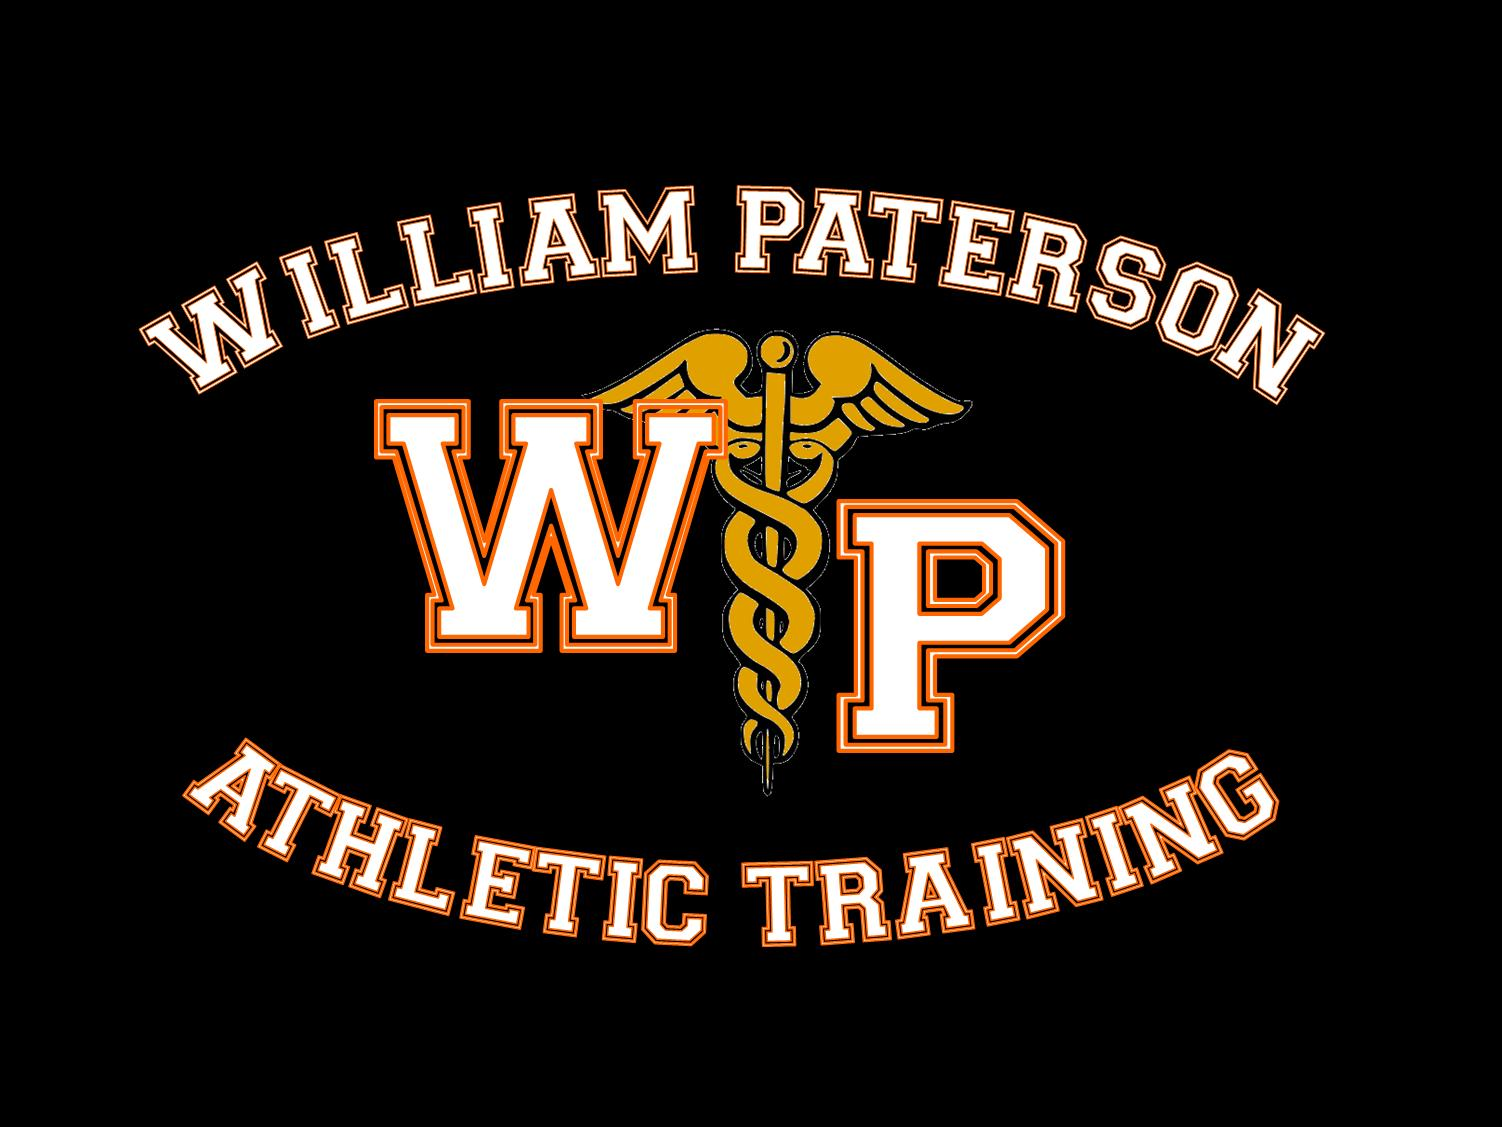 Mission Statement William Paterson University